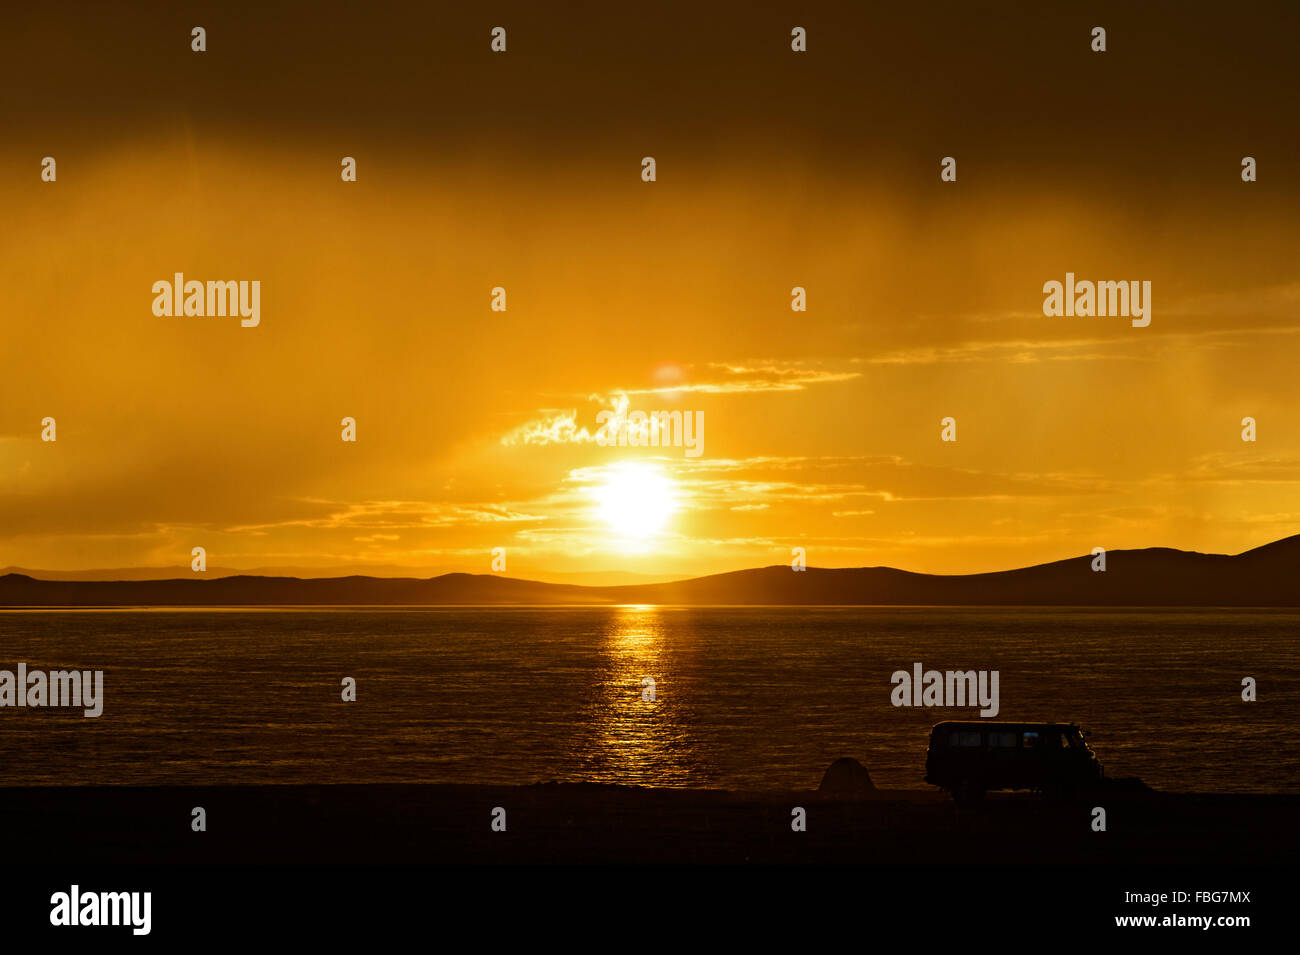 Sunset at Ger camp, Khatan Ugii, Ögii Lake, Arkhangai Aimag, Mongolia - Stock Image